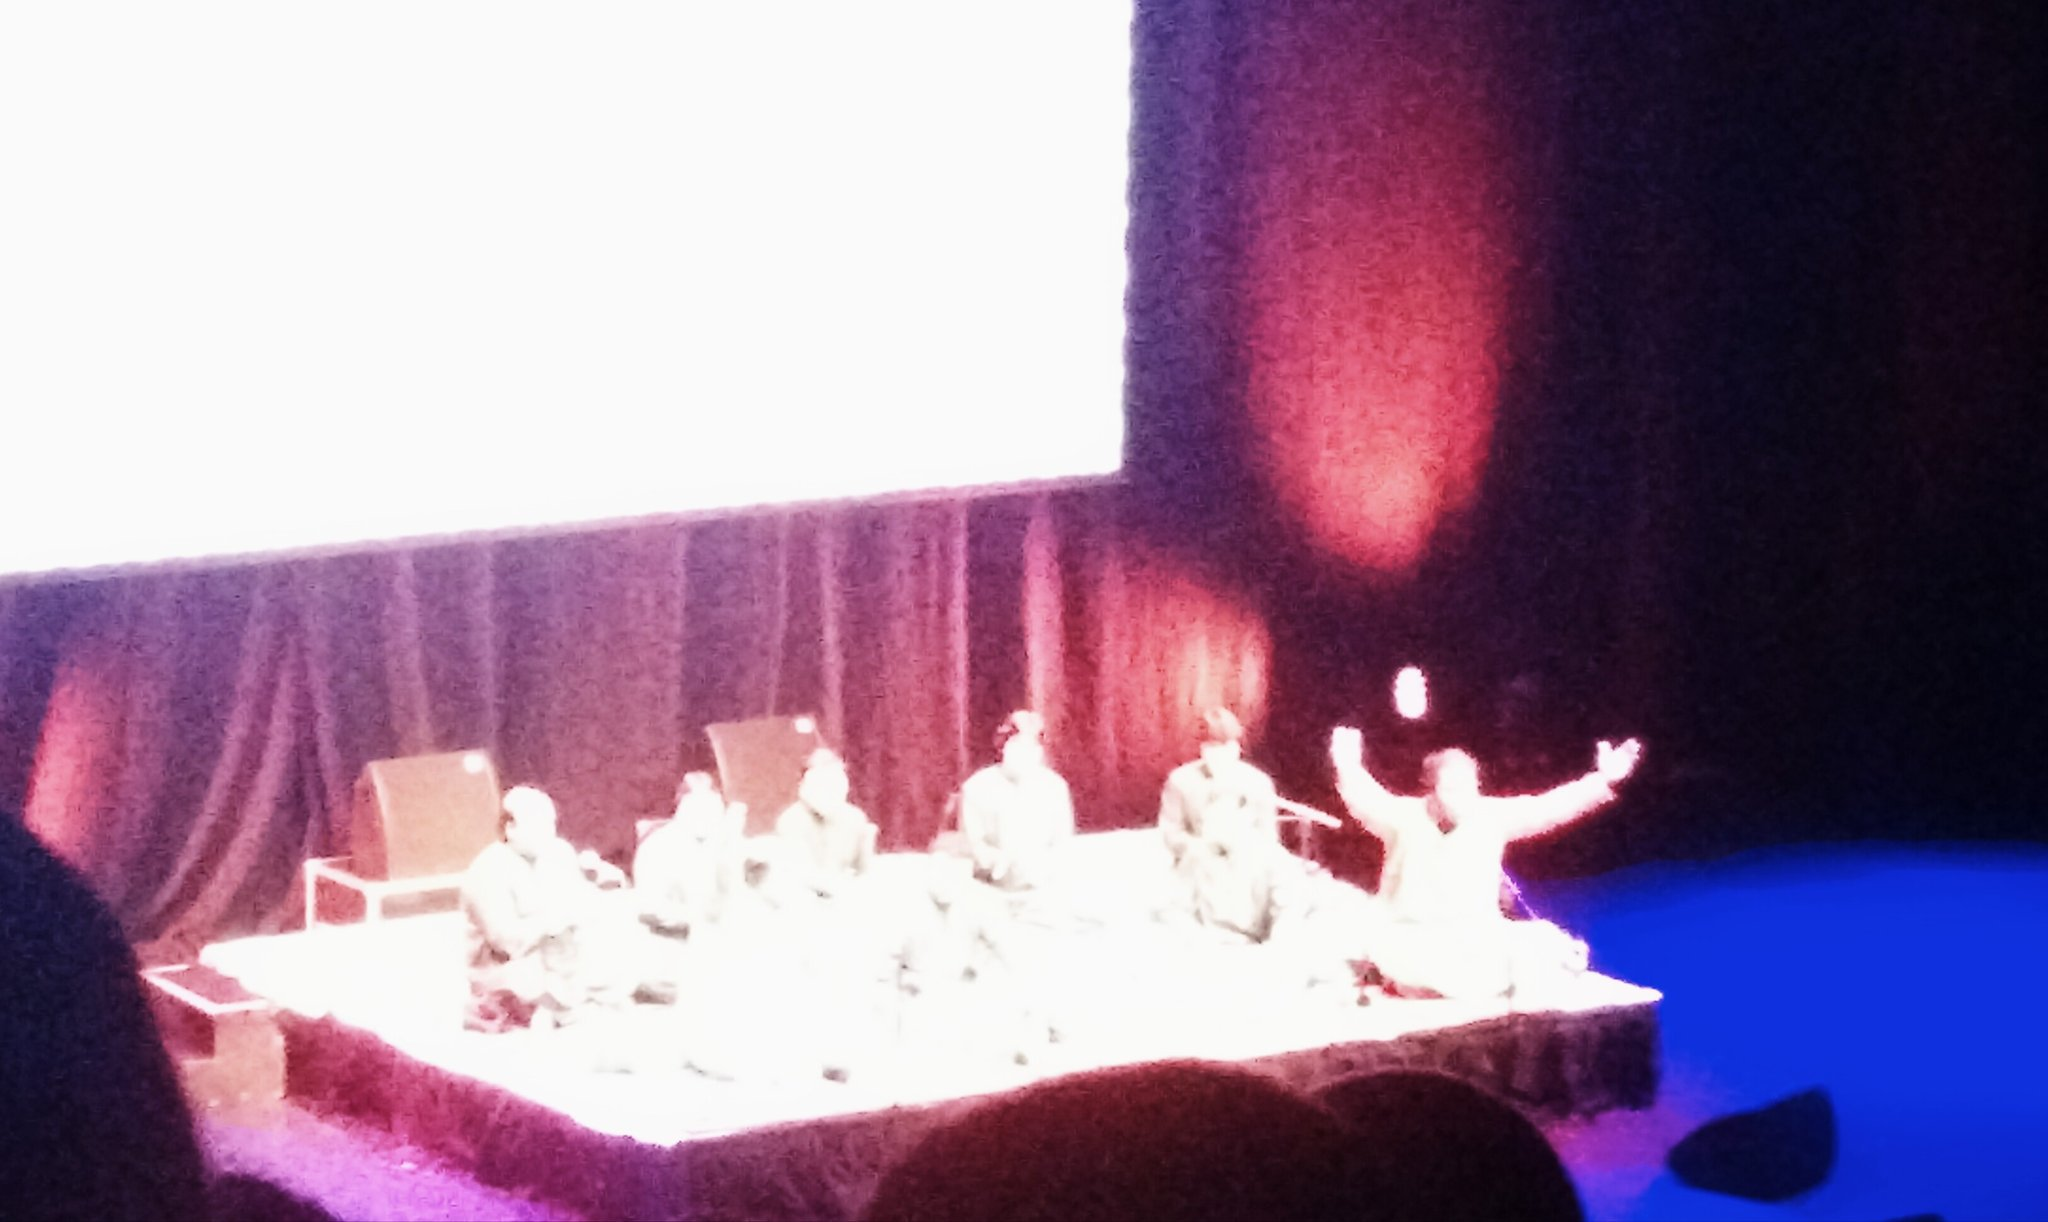 Incredible performance from brothers Rizwan & Muazzam celebrating the life of their uncle Nusrat Fateh Ali Khan @BarbicanCentre #Goosebumps https://t.co/QjHbEjEN4v